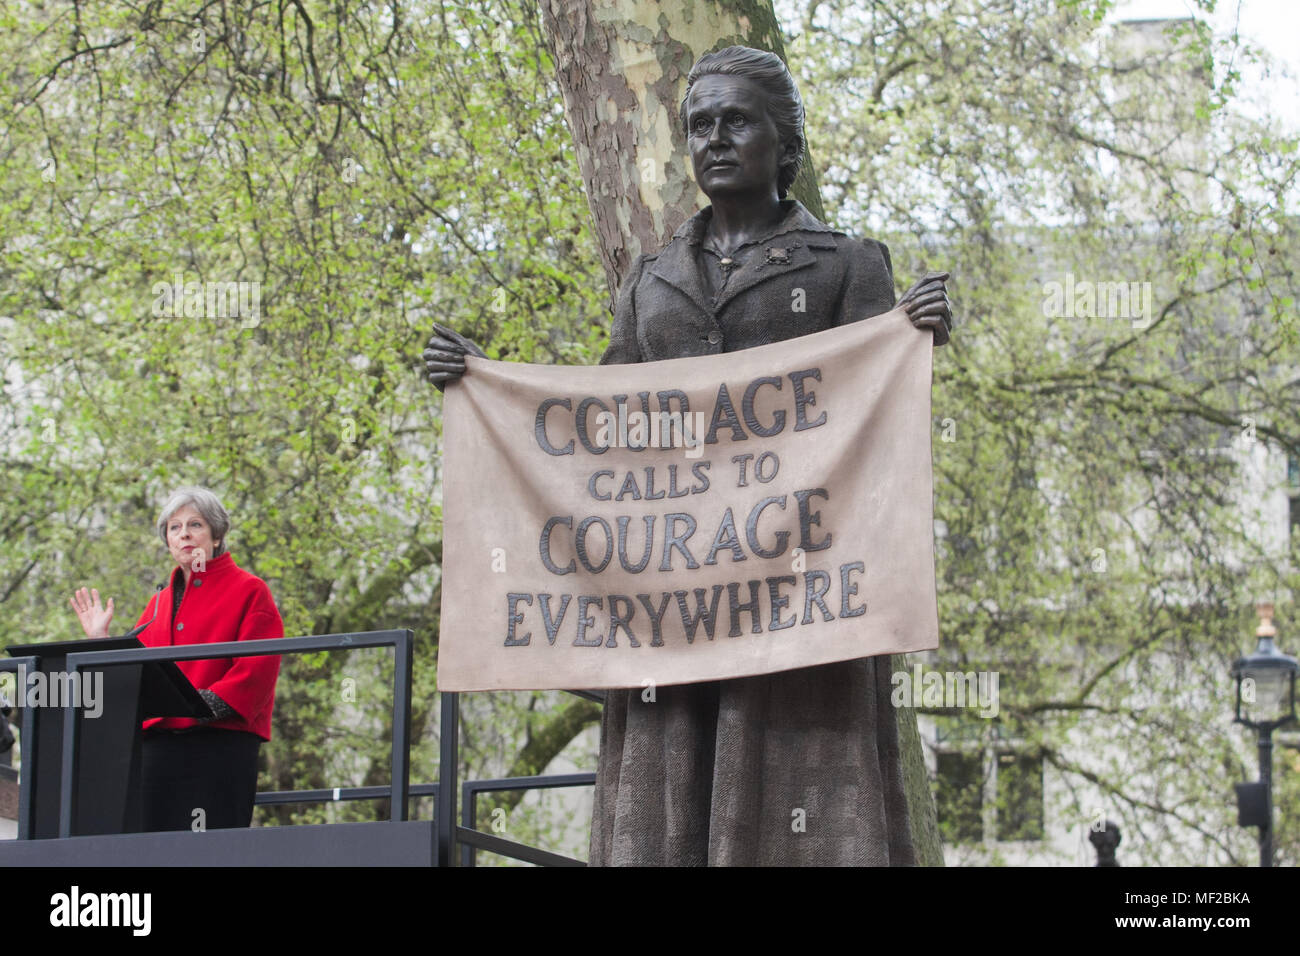 London UK. 24th April 2018. Prime Minister Theresa May attends the unveiling ceremony in Parliament Square for Suffragist  leader Millicent Fawcett who campaign for Women's rights Credit: amer ghazzal/Alamy Live News - Stock Image